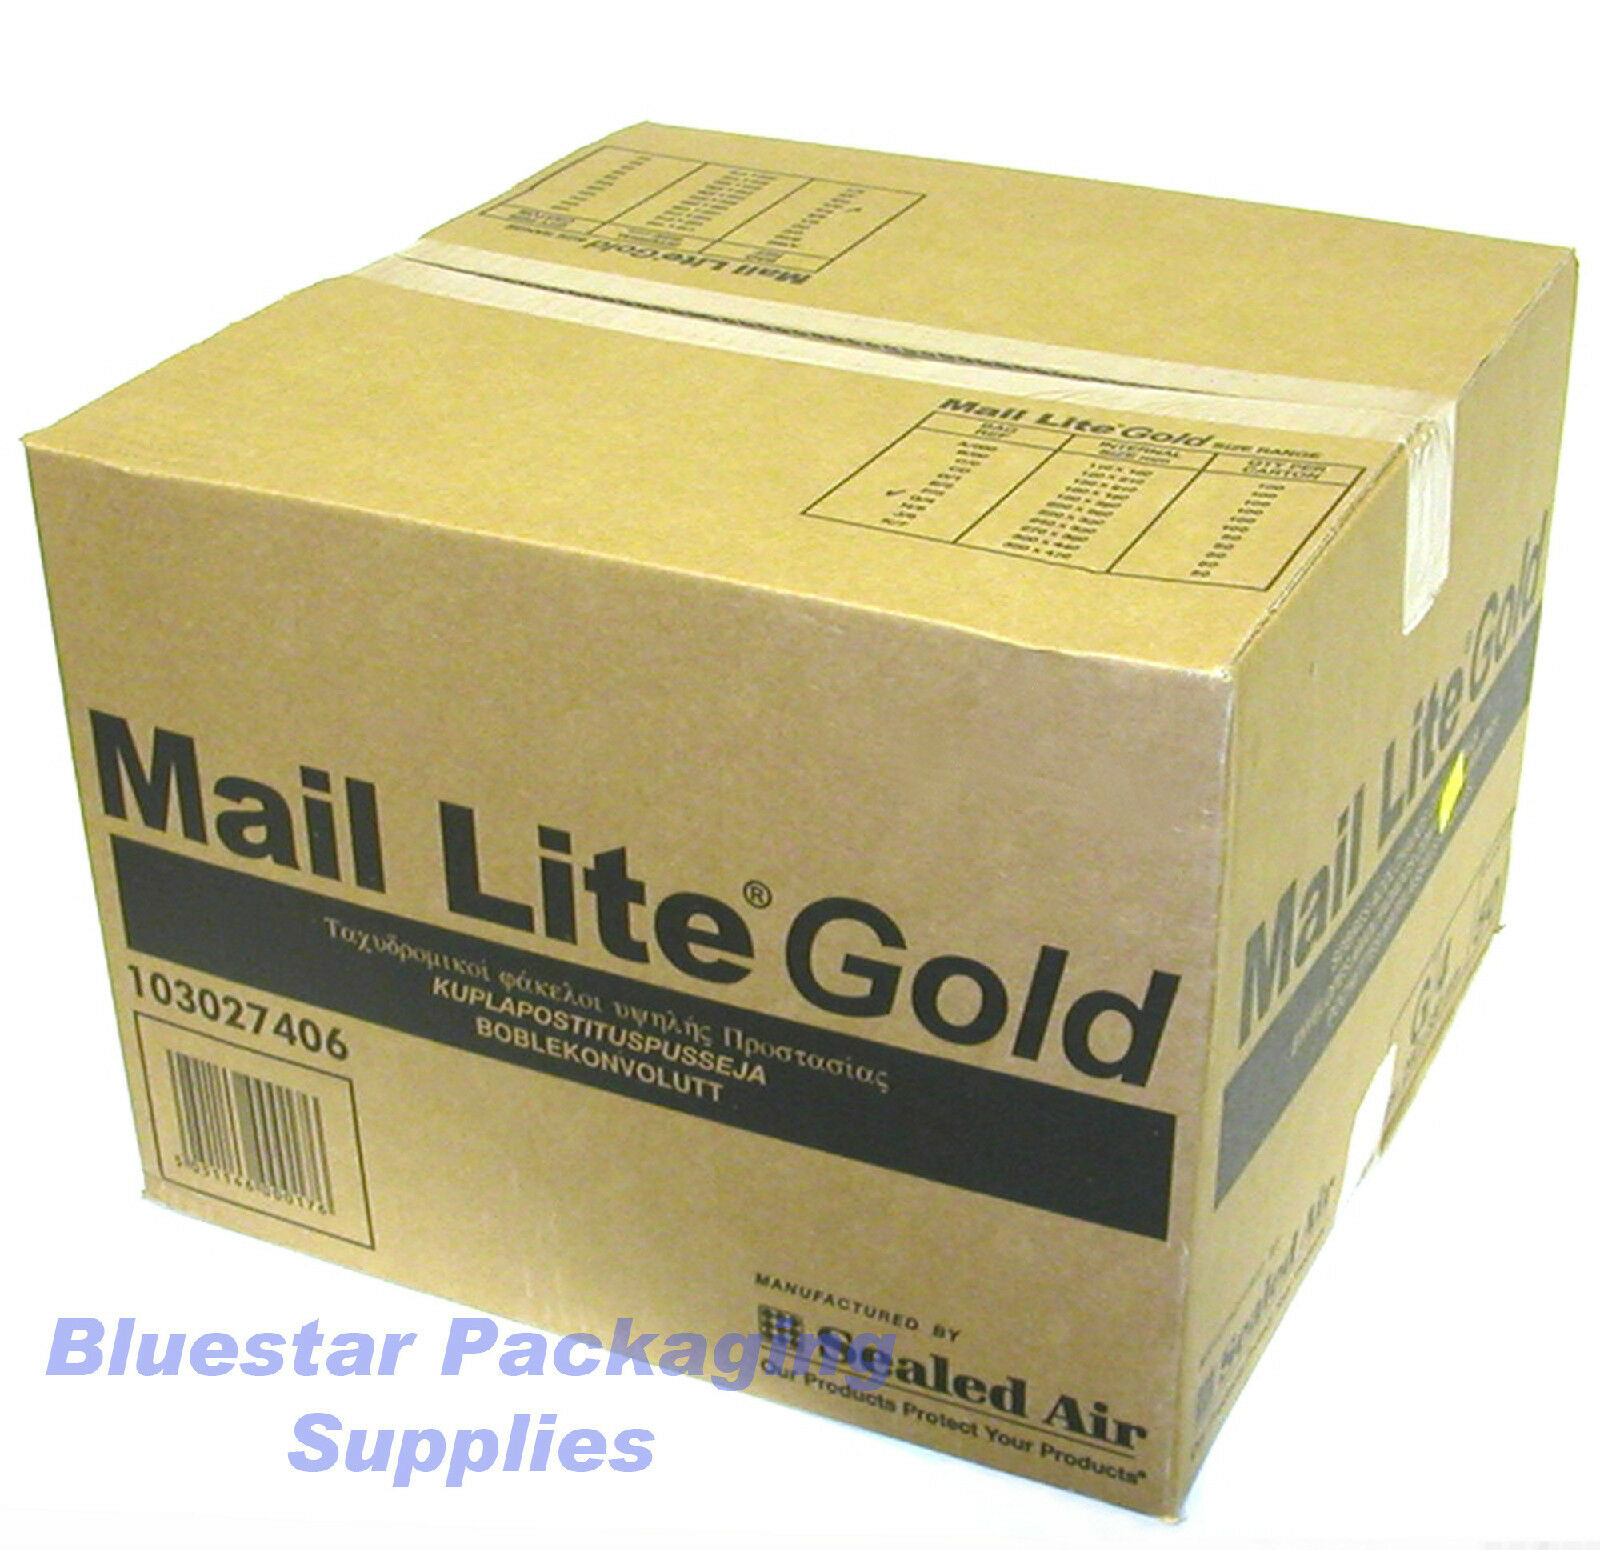 C//0 White Mail Lite Padded Envelopes 150mm x 210mm Bubble Wrap Lined Mailers 100